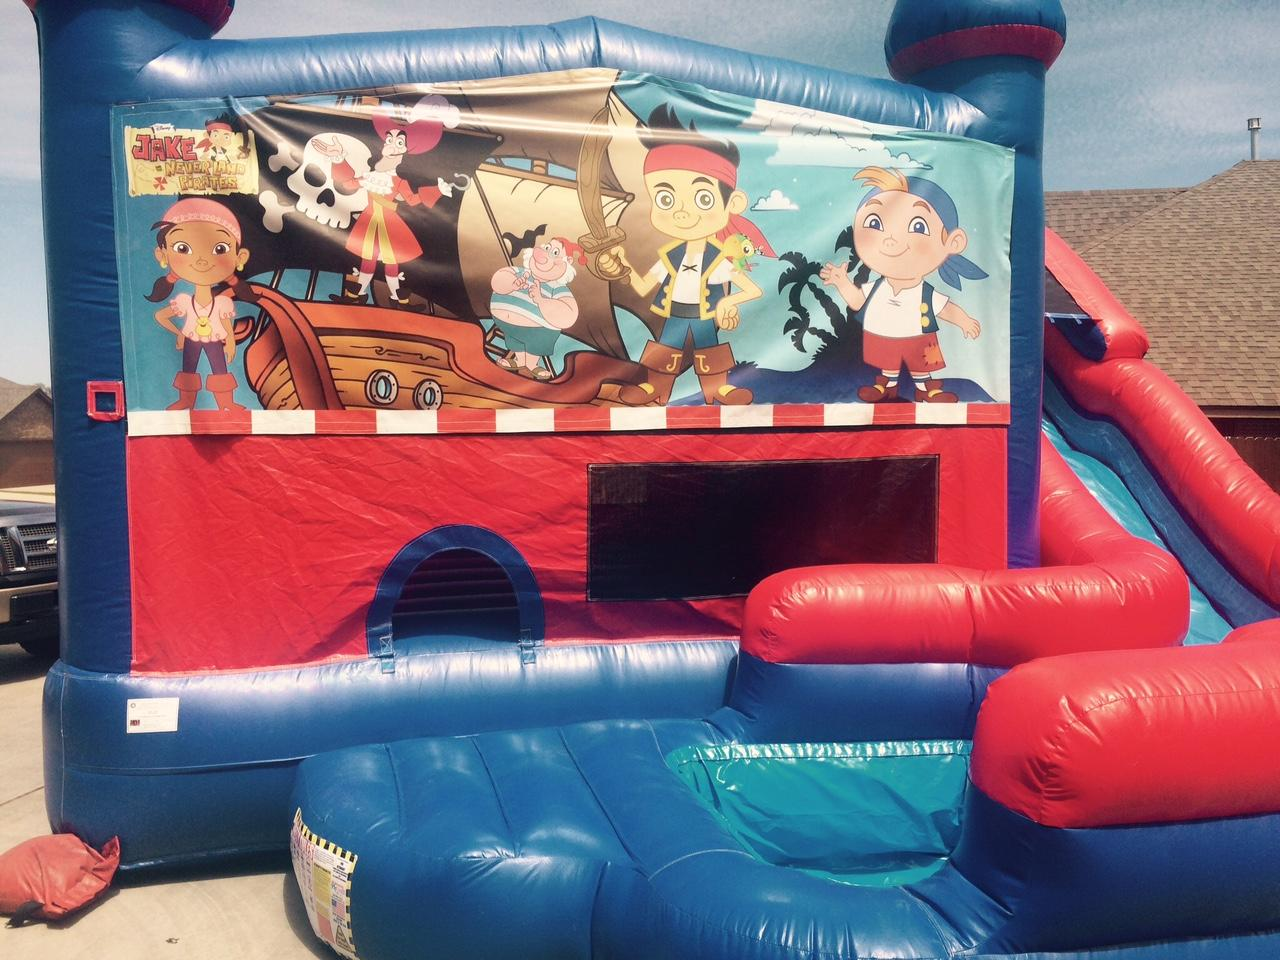 Sooner Bounce Inflatables image 3